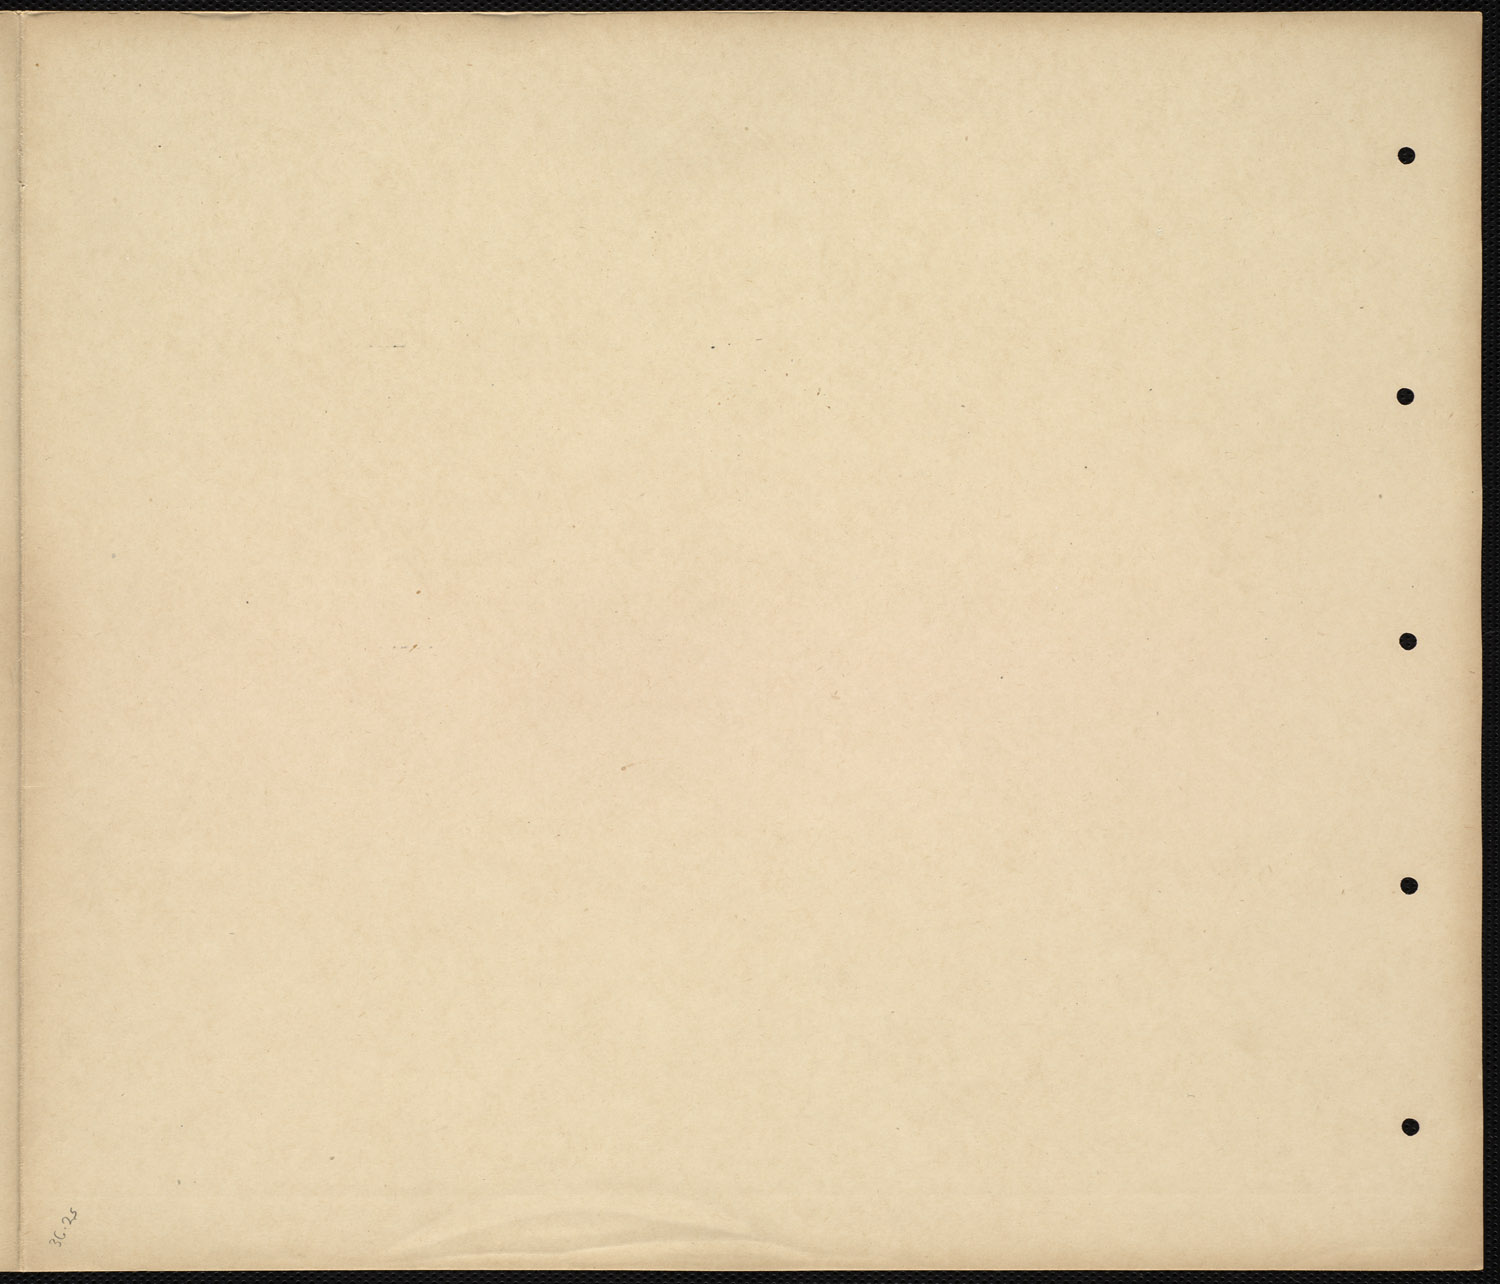 File:Blank page 5.jpg - Wikimedia Commons